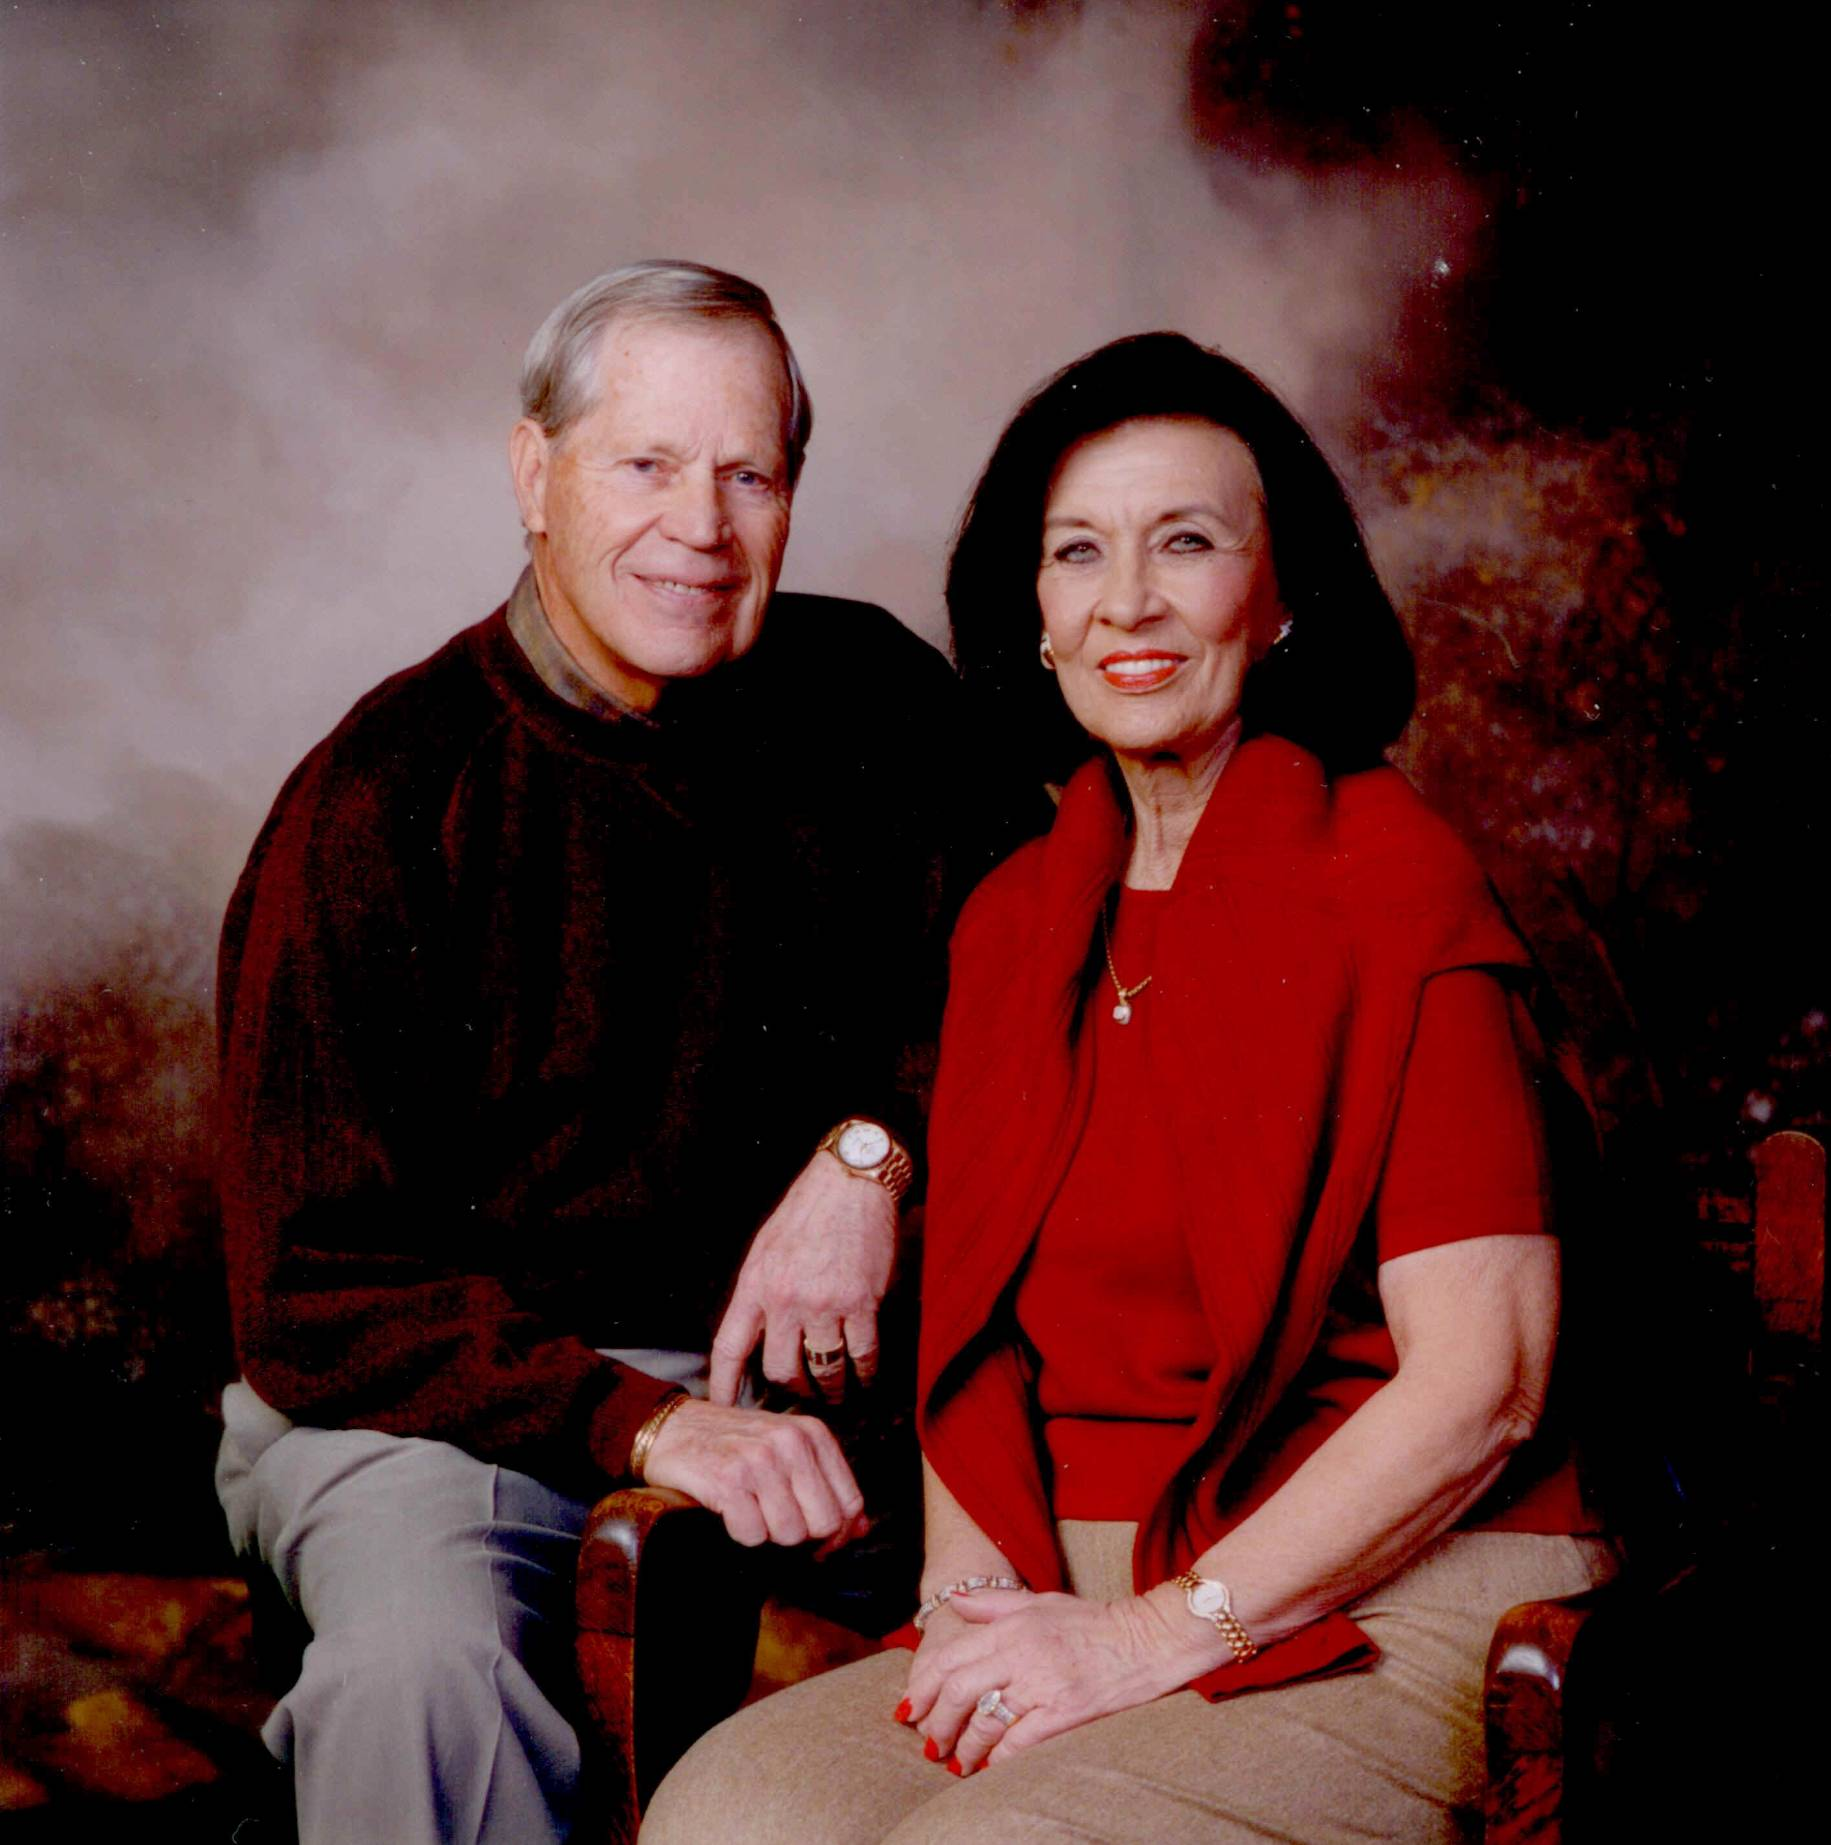 Image of Jim and Jere Lynn Burkhart